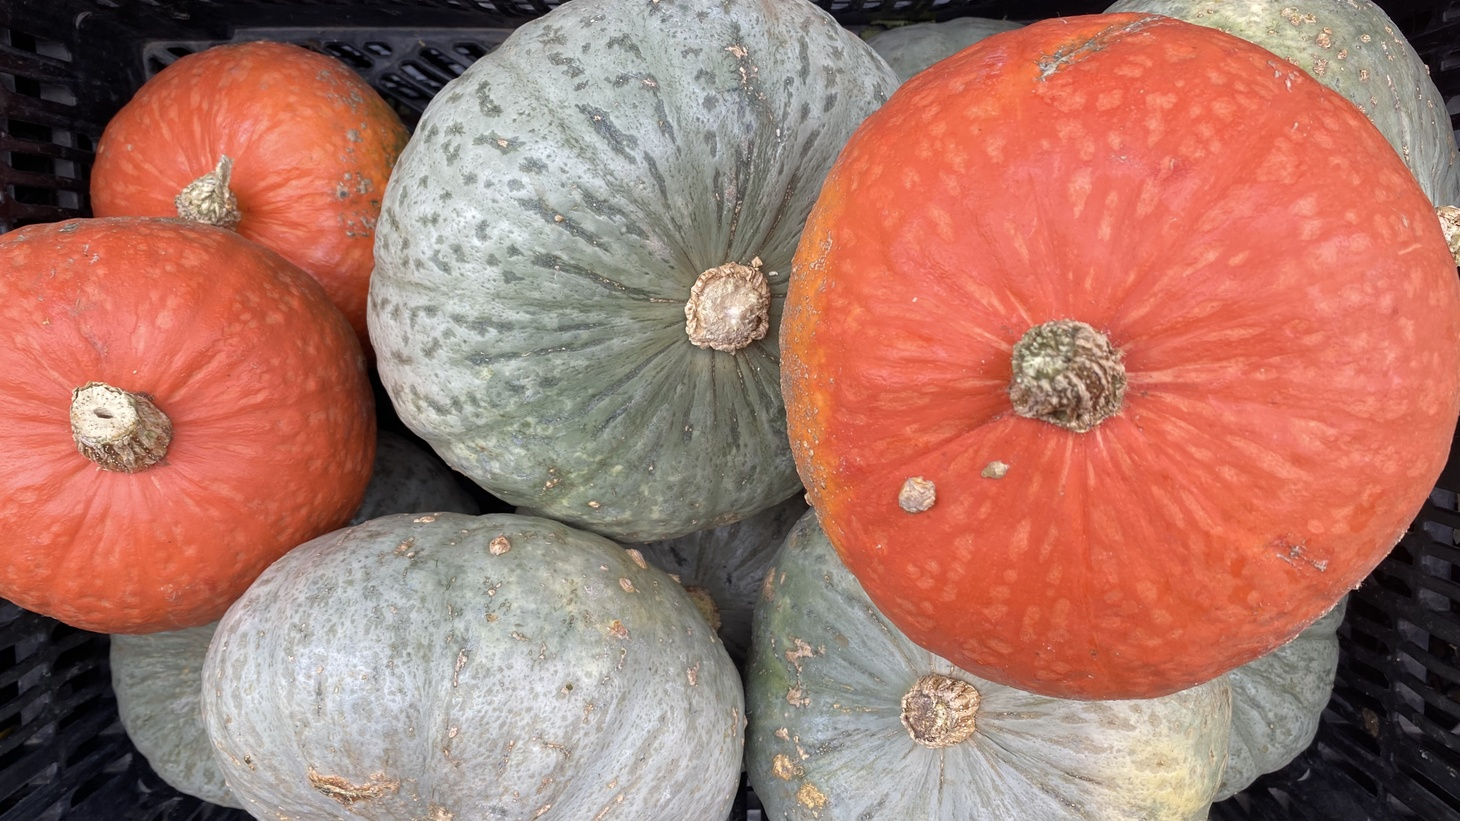 Peter Schaner of Schaner Family Farms is growing winter squashes that are available at the Santa Monica Farmer's Market.